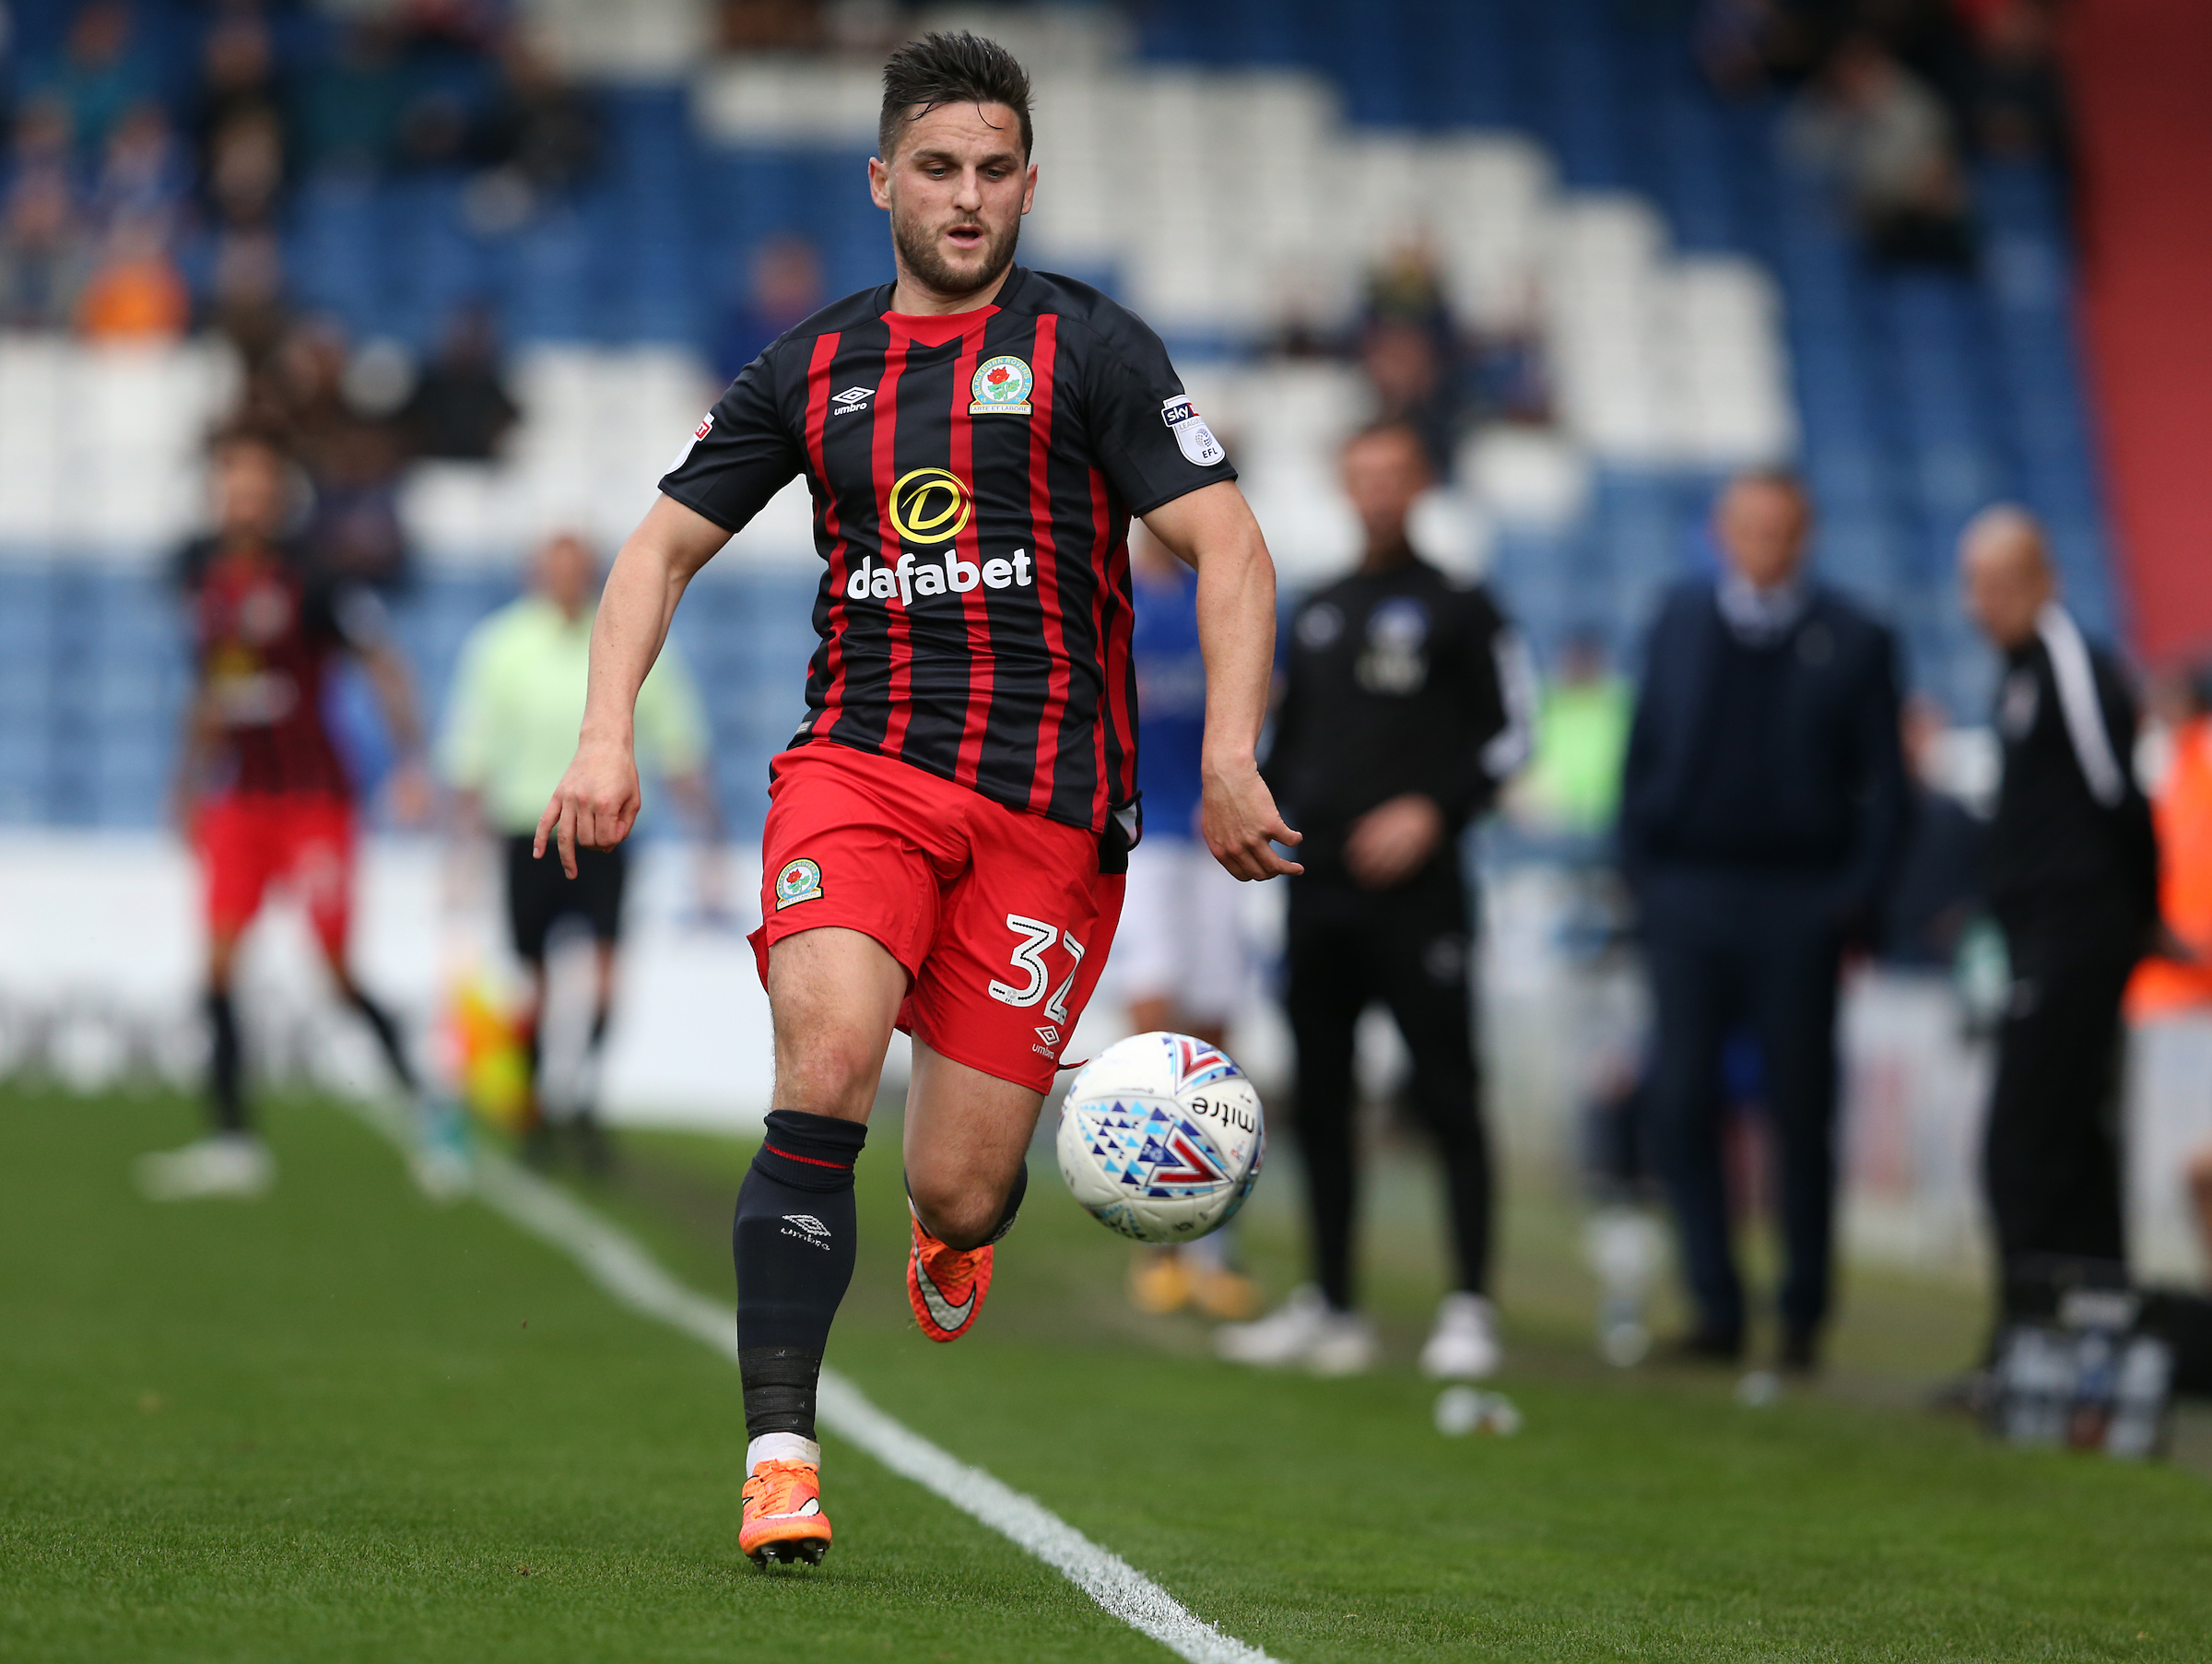 Craig Conway will return to the Rovers squad for this weekend's trip to Peterborough United